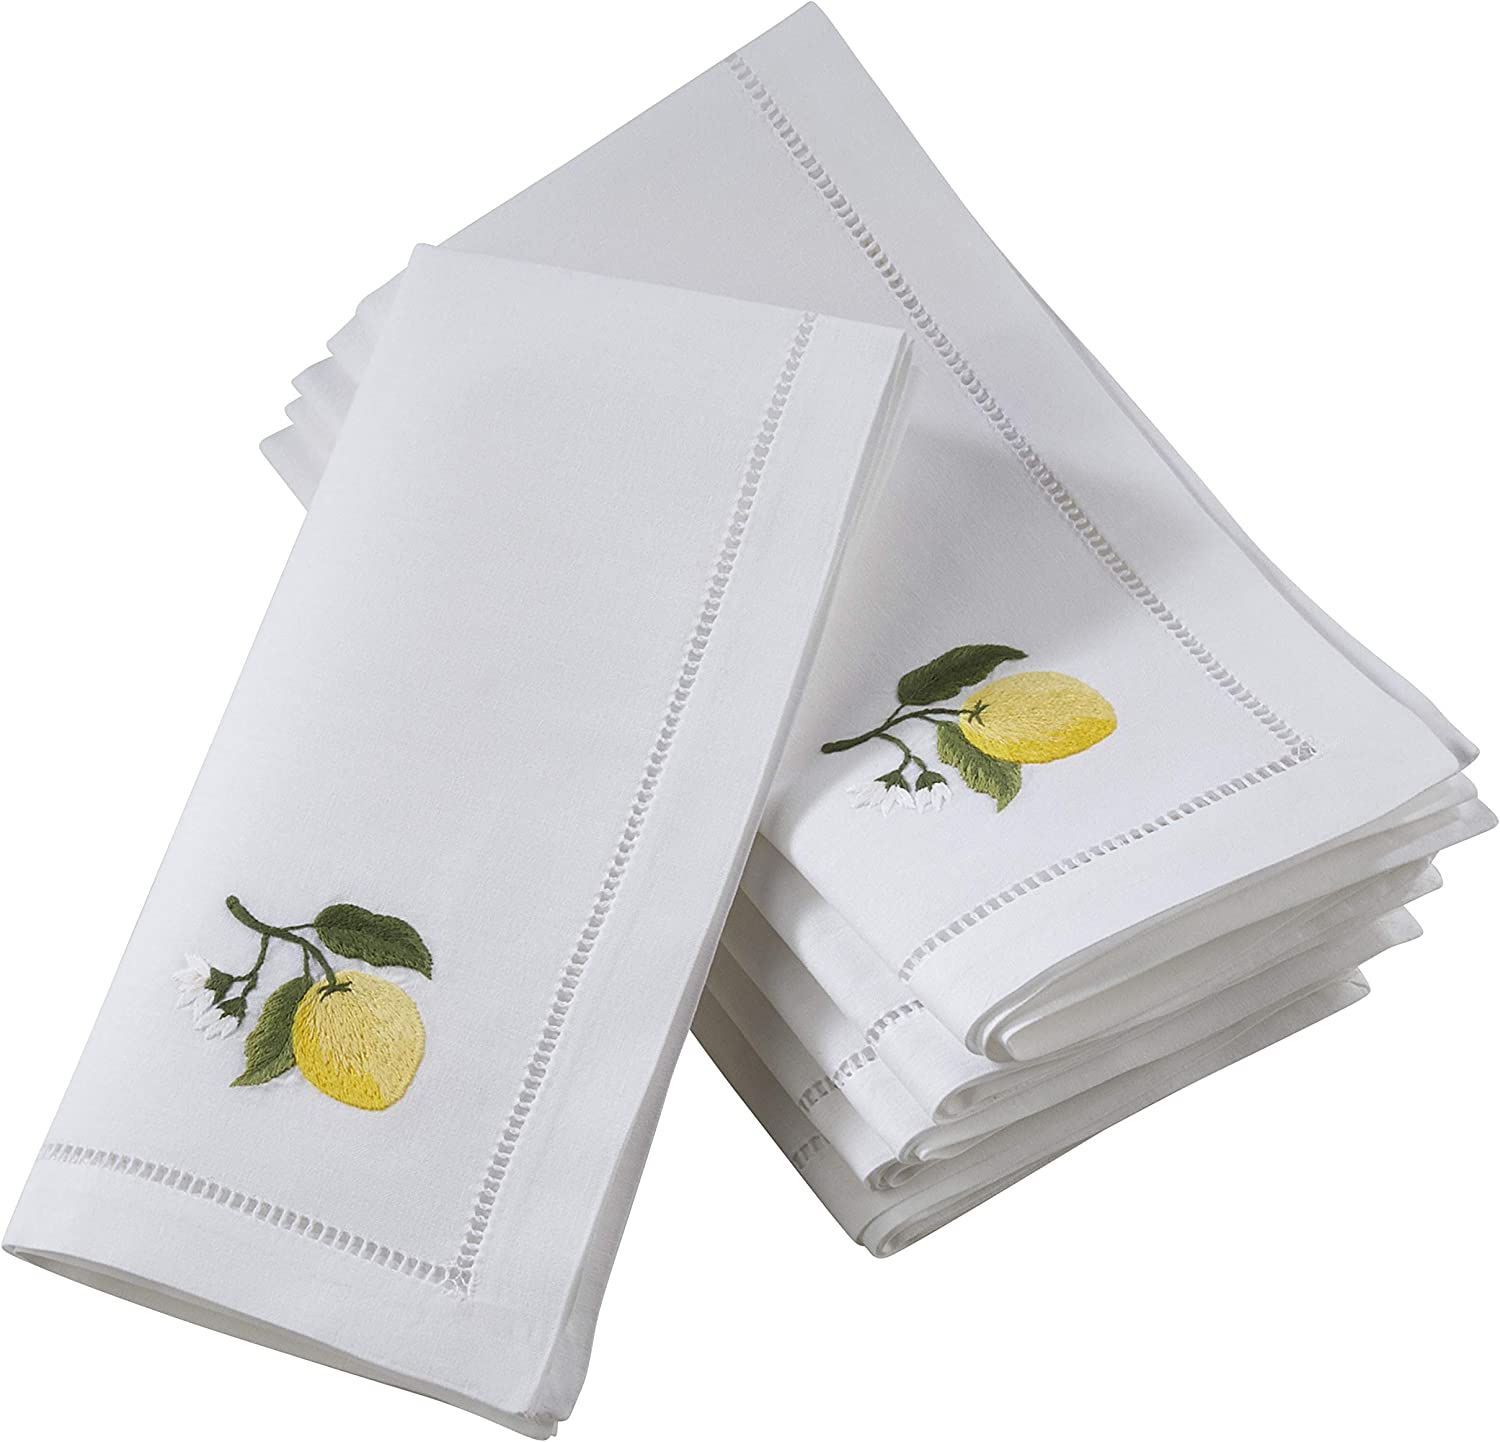 Saro Lifestyle Nm136 W20s The Broderie Collection Hemstitch Table Napkins With Embroidered Lemon Design 20 Set Of 6 Cloth Napkins Kitchen Dining